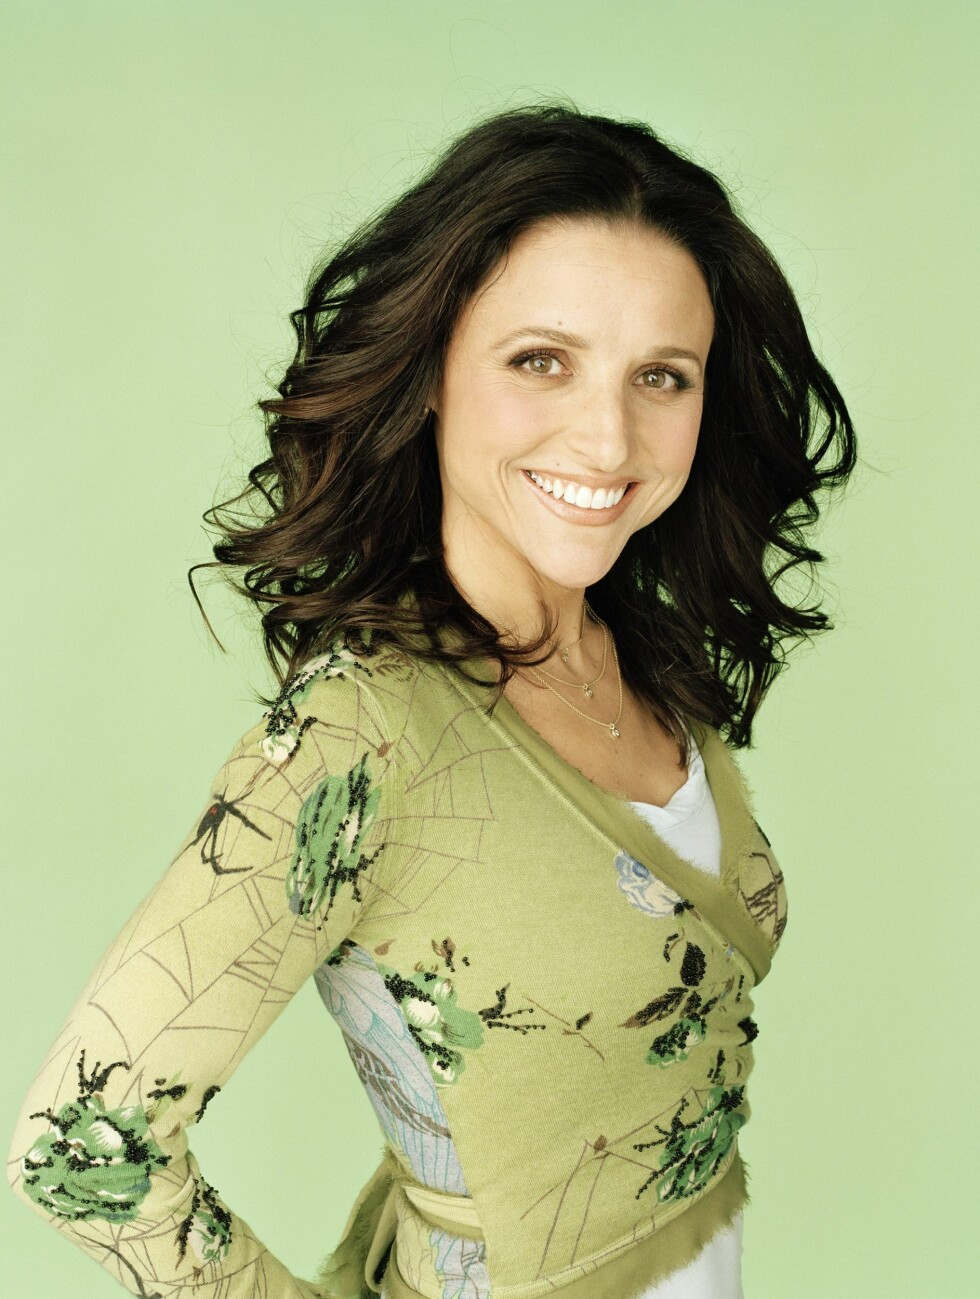 Julia Louis-Dreyfus har lang fartstid i en rekke miljøorganisasjoner, blant annet Heal the Bay, The Natural Resources Defense Council og the Trust for Public Land. Den tidligere Seinfeld-stjernen bor også i et solcelledrevet hus.  Foto: All Over Press